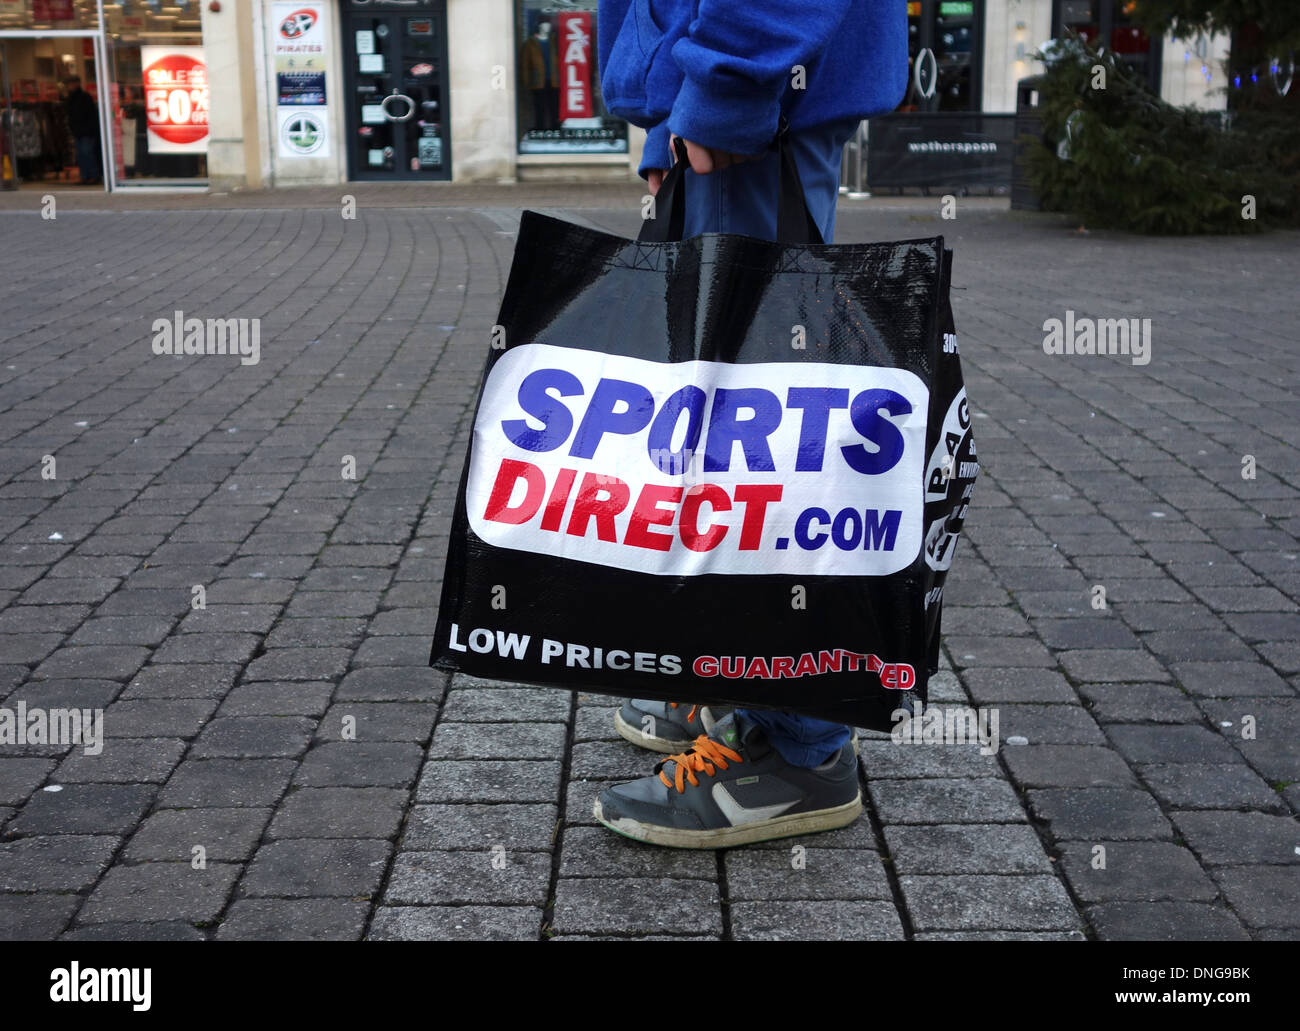 a customer carrying a sports direct shopping bag - Stock Image